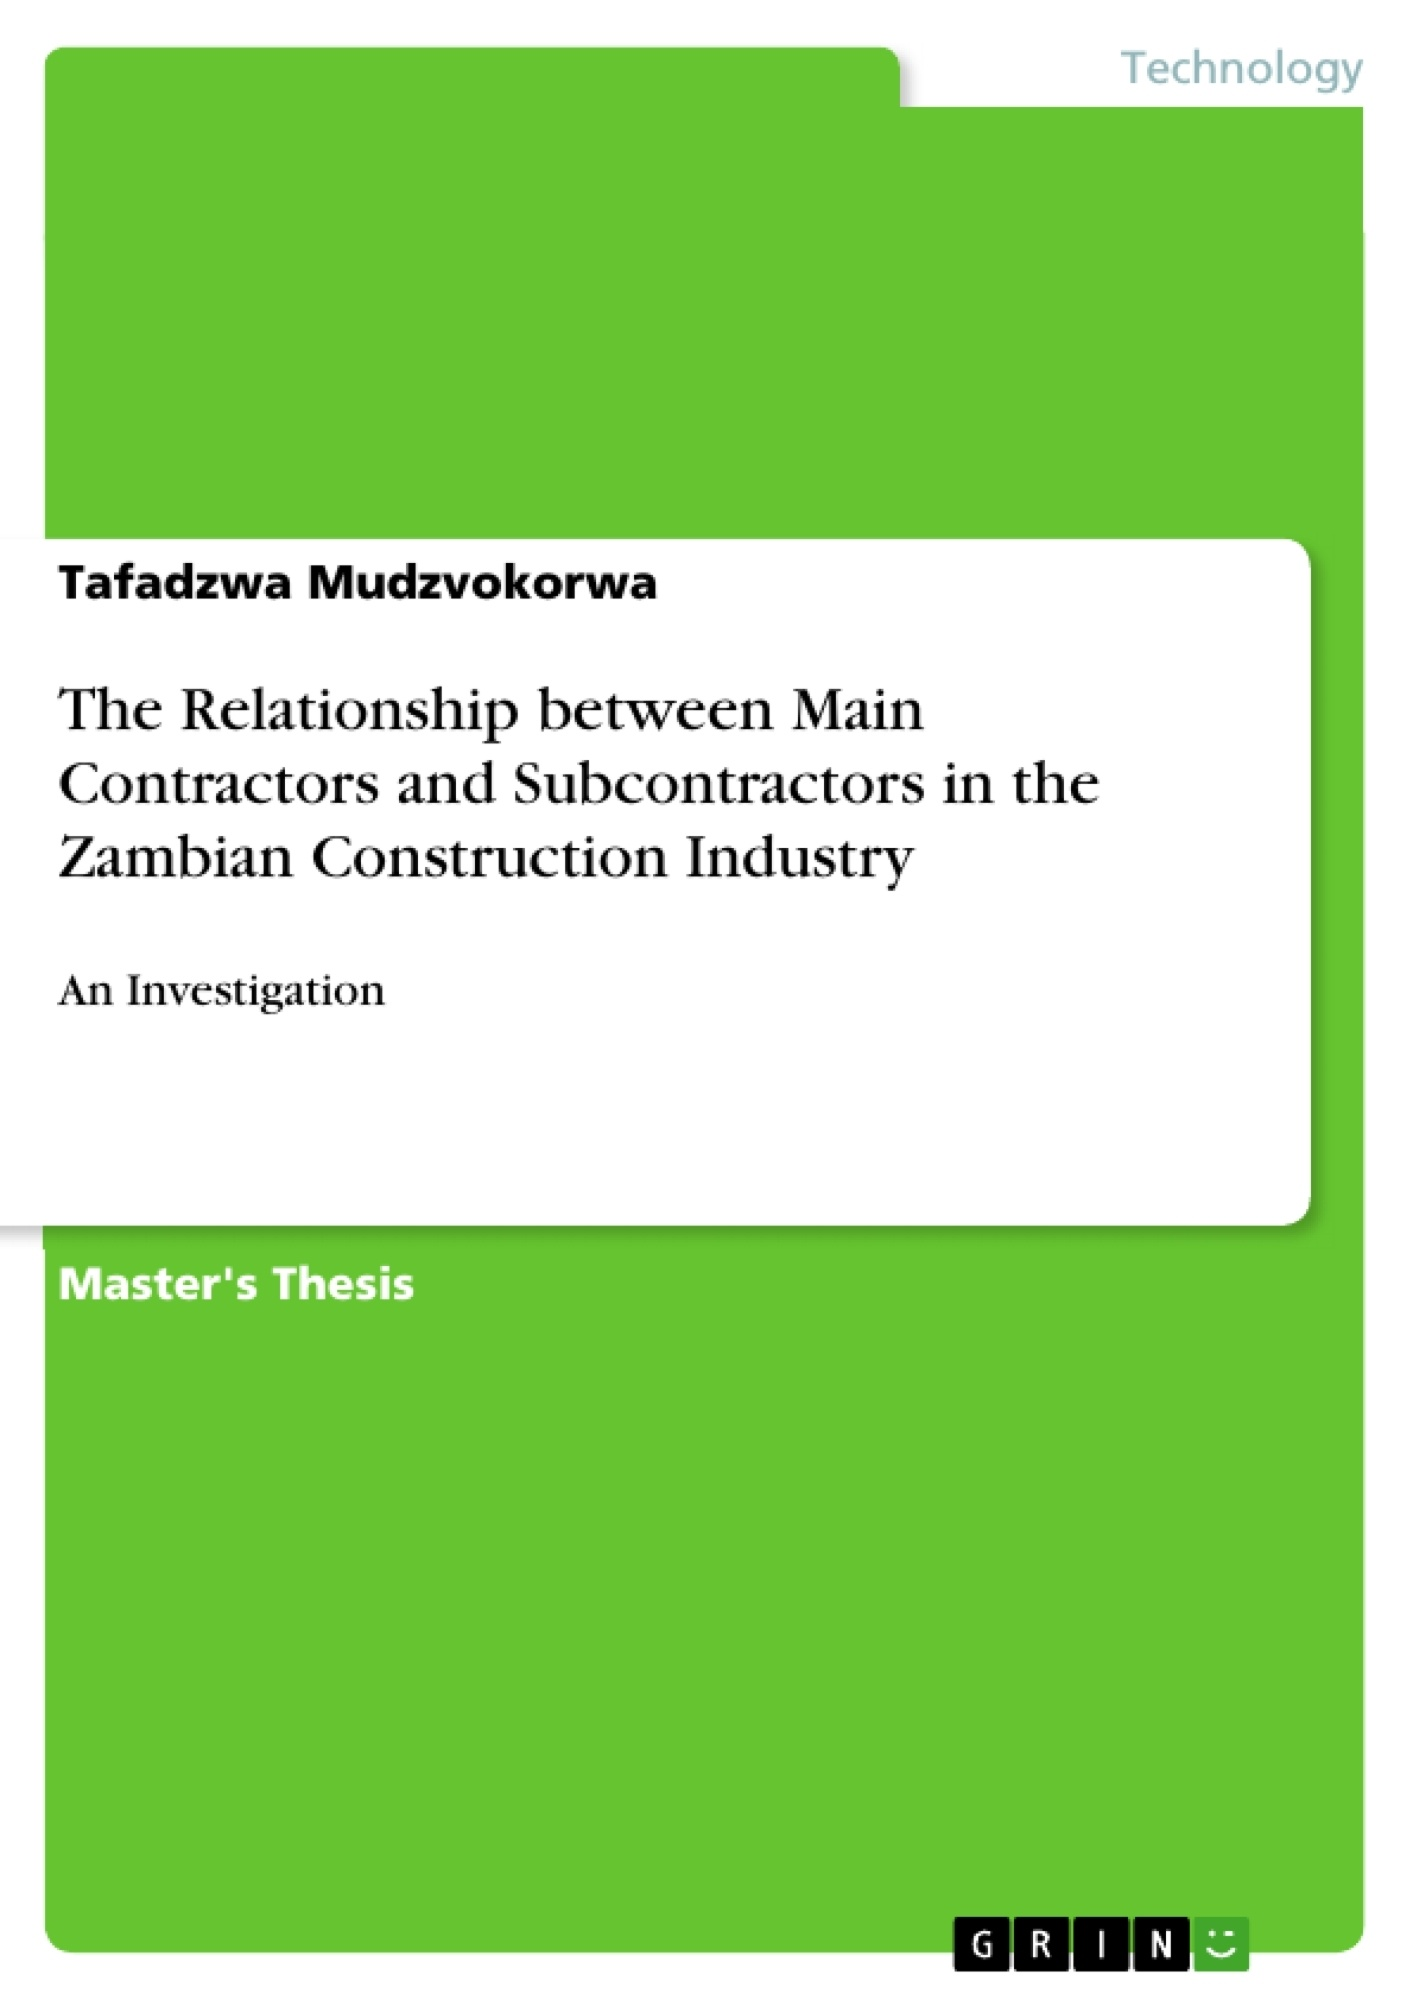 GRIN - The Relationship between Main Contractors and Subcontractors in the  Zambian Construction Industry